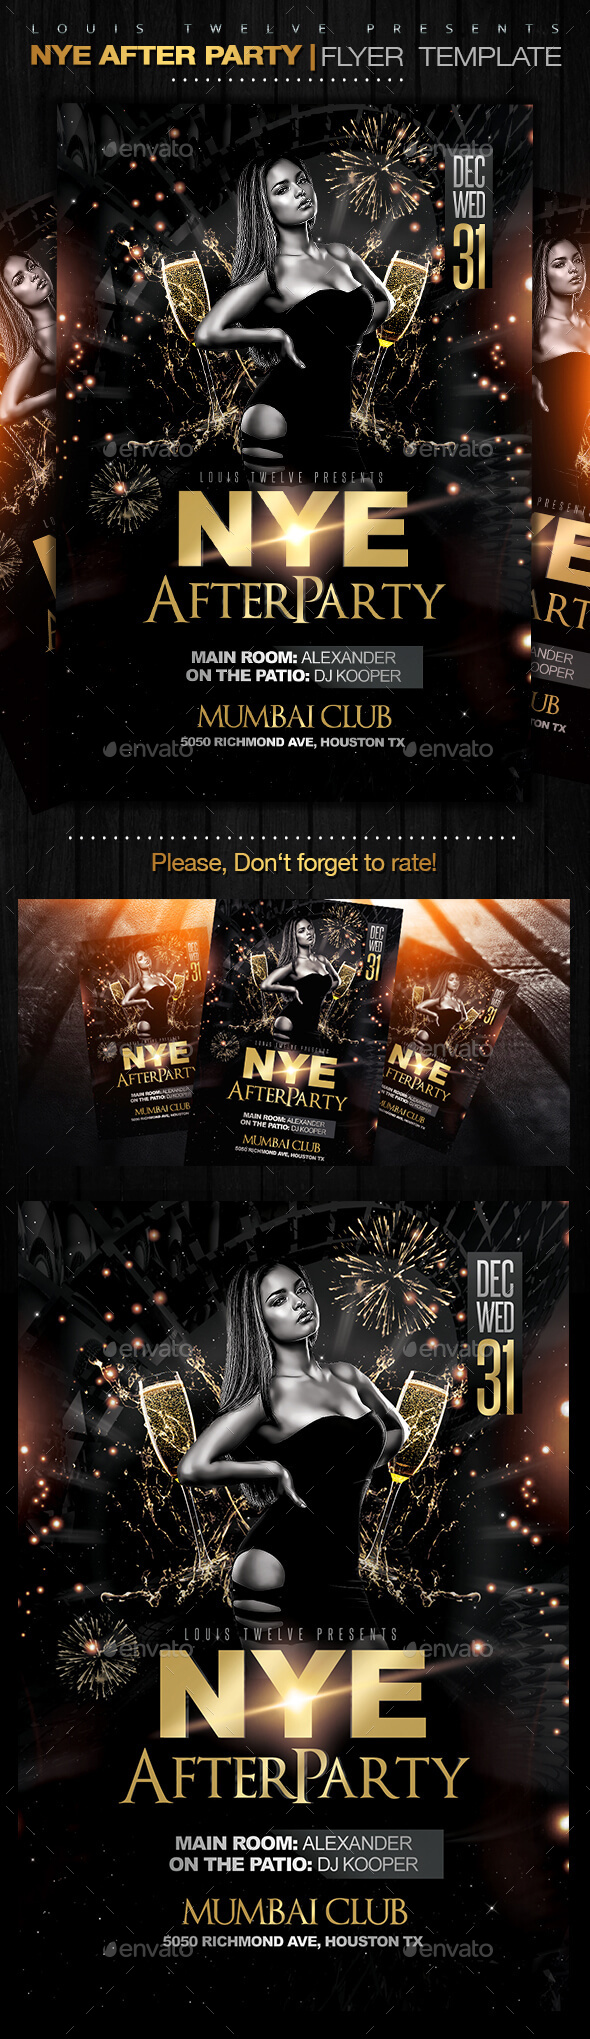 NYE After Party Flyer Template